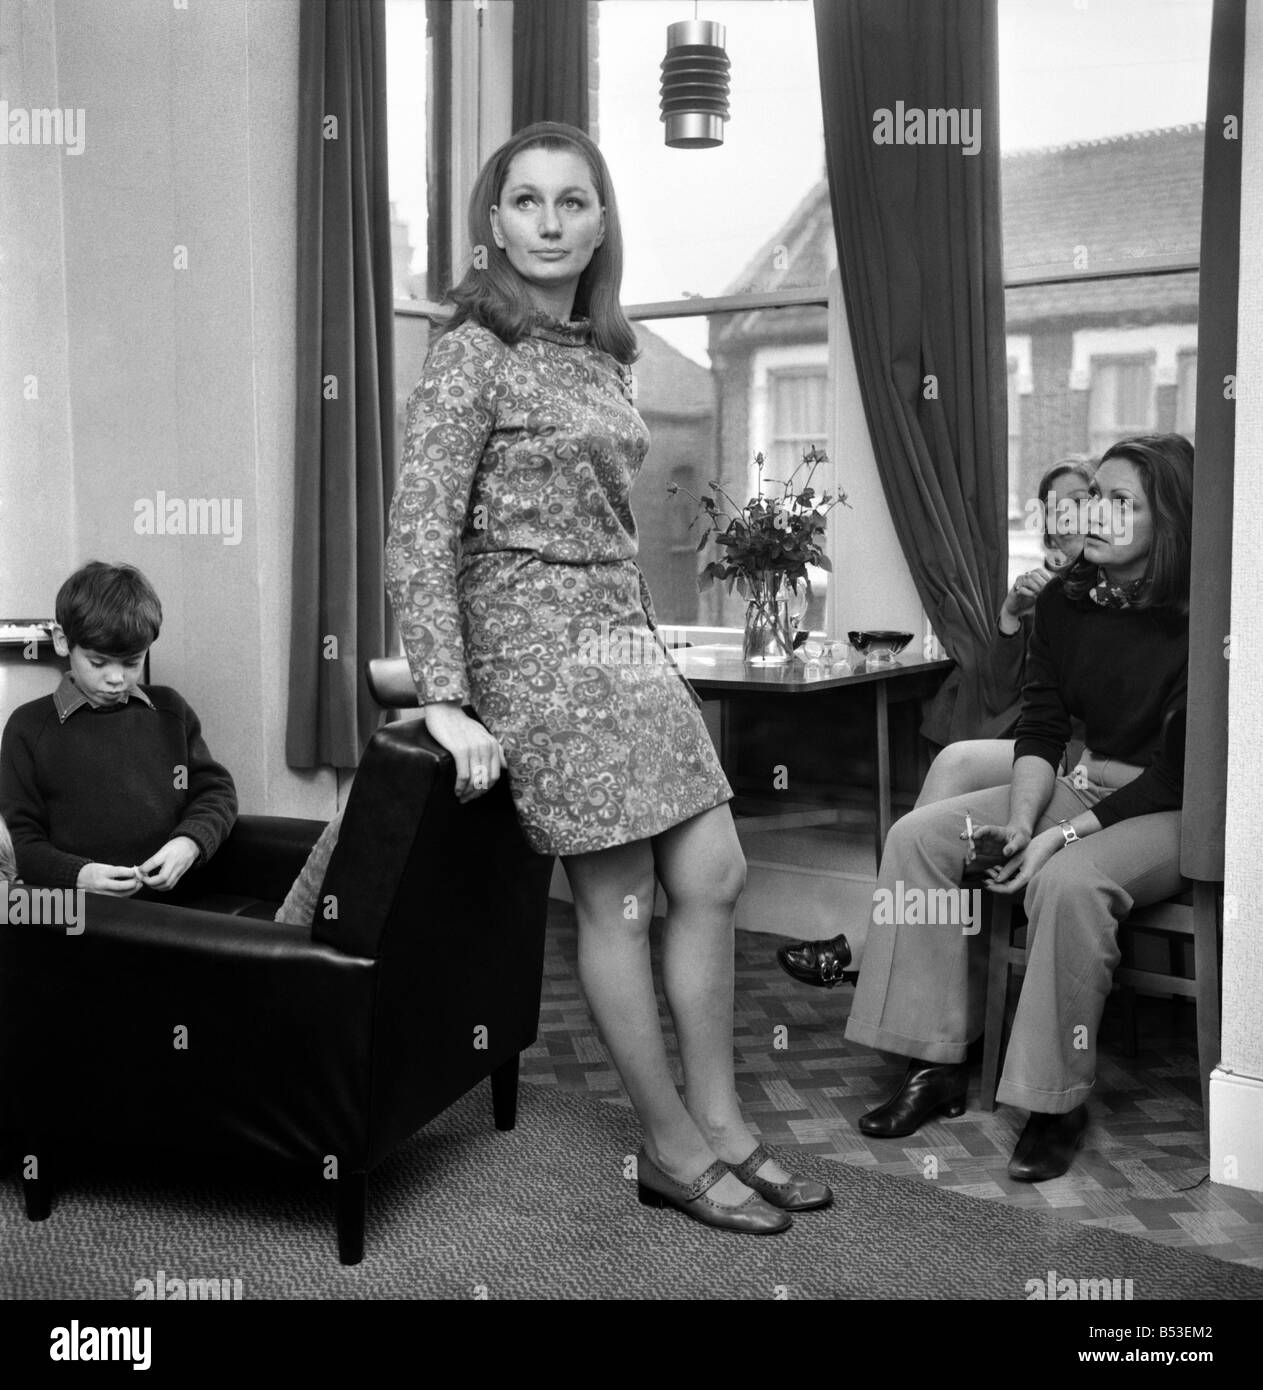 British family feature: Portrait of a middle aged woman and mother. November 1969 Z11311-014 - Stock Image